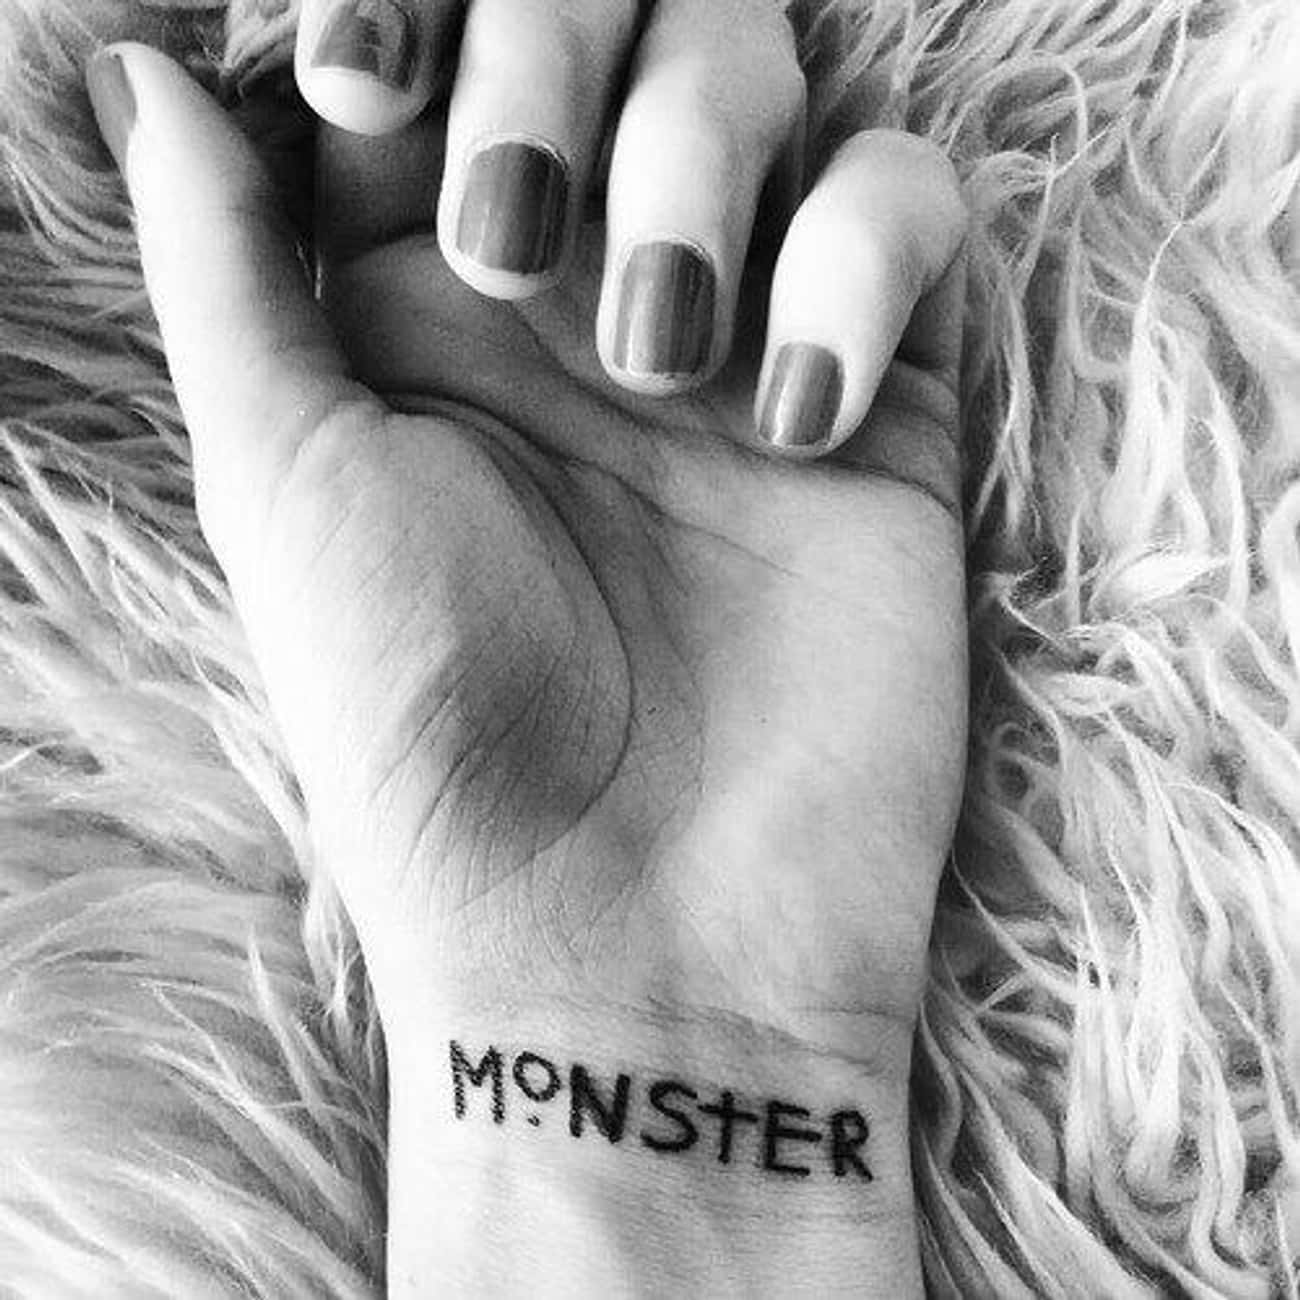 This Subtle Reminder of Your I is listed (or ranked) 3 on the list 25 Incredible Tattoos Inspired by American Horror Story